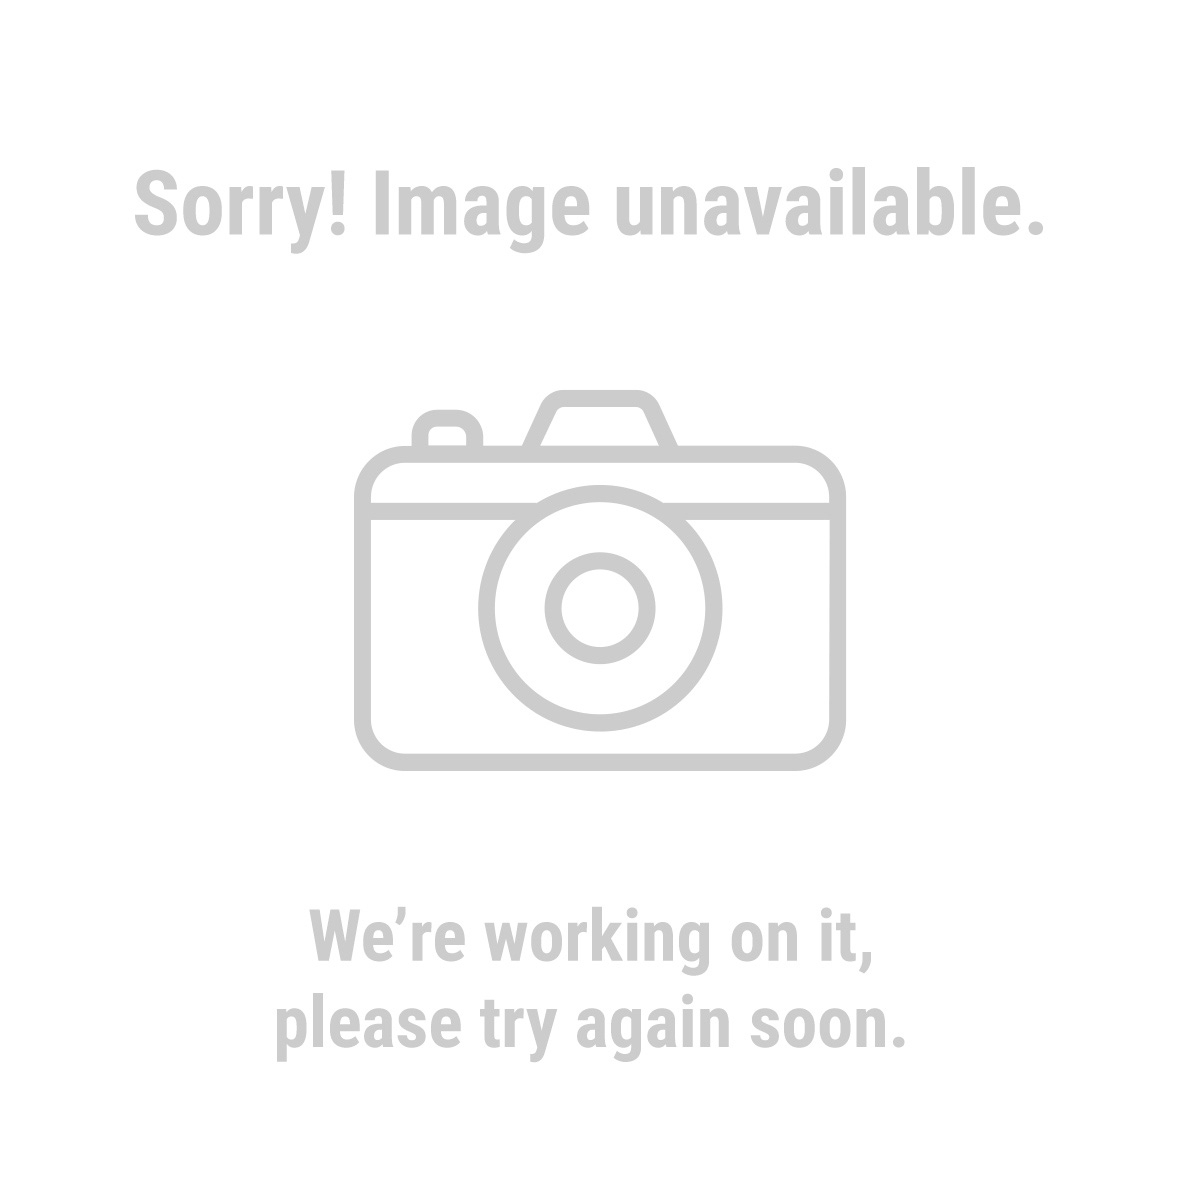 Haul-Master 66771 600 lb. Capacity 78 in. Tag-Along Trailer with  Wheels and Tires